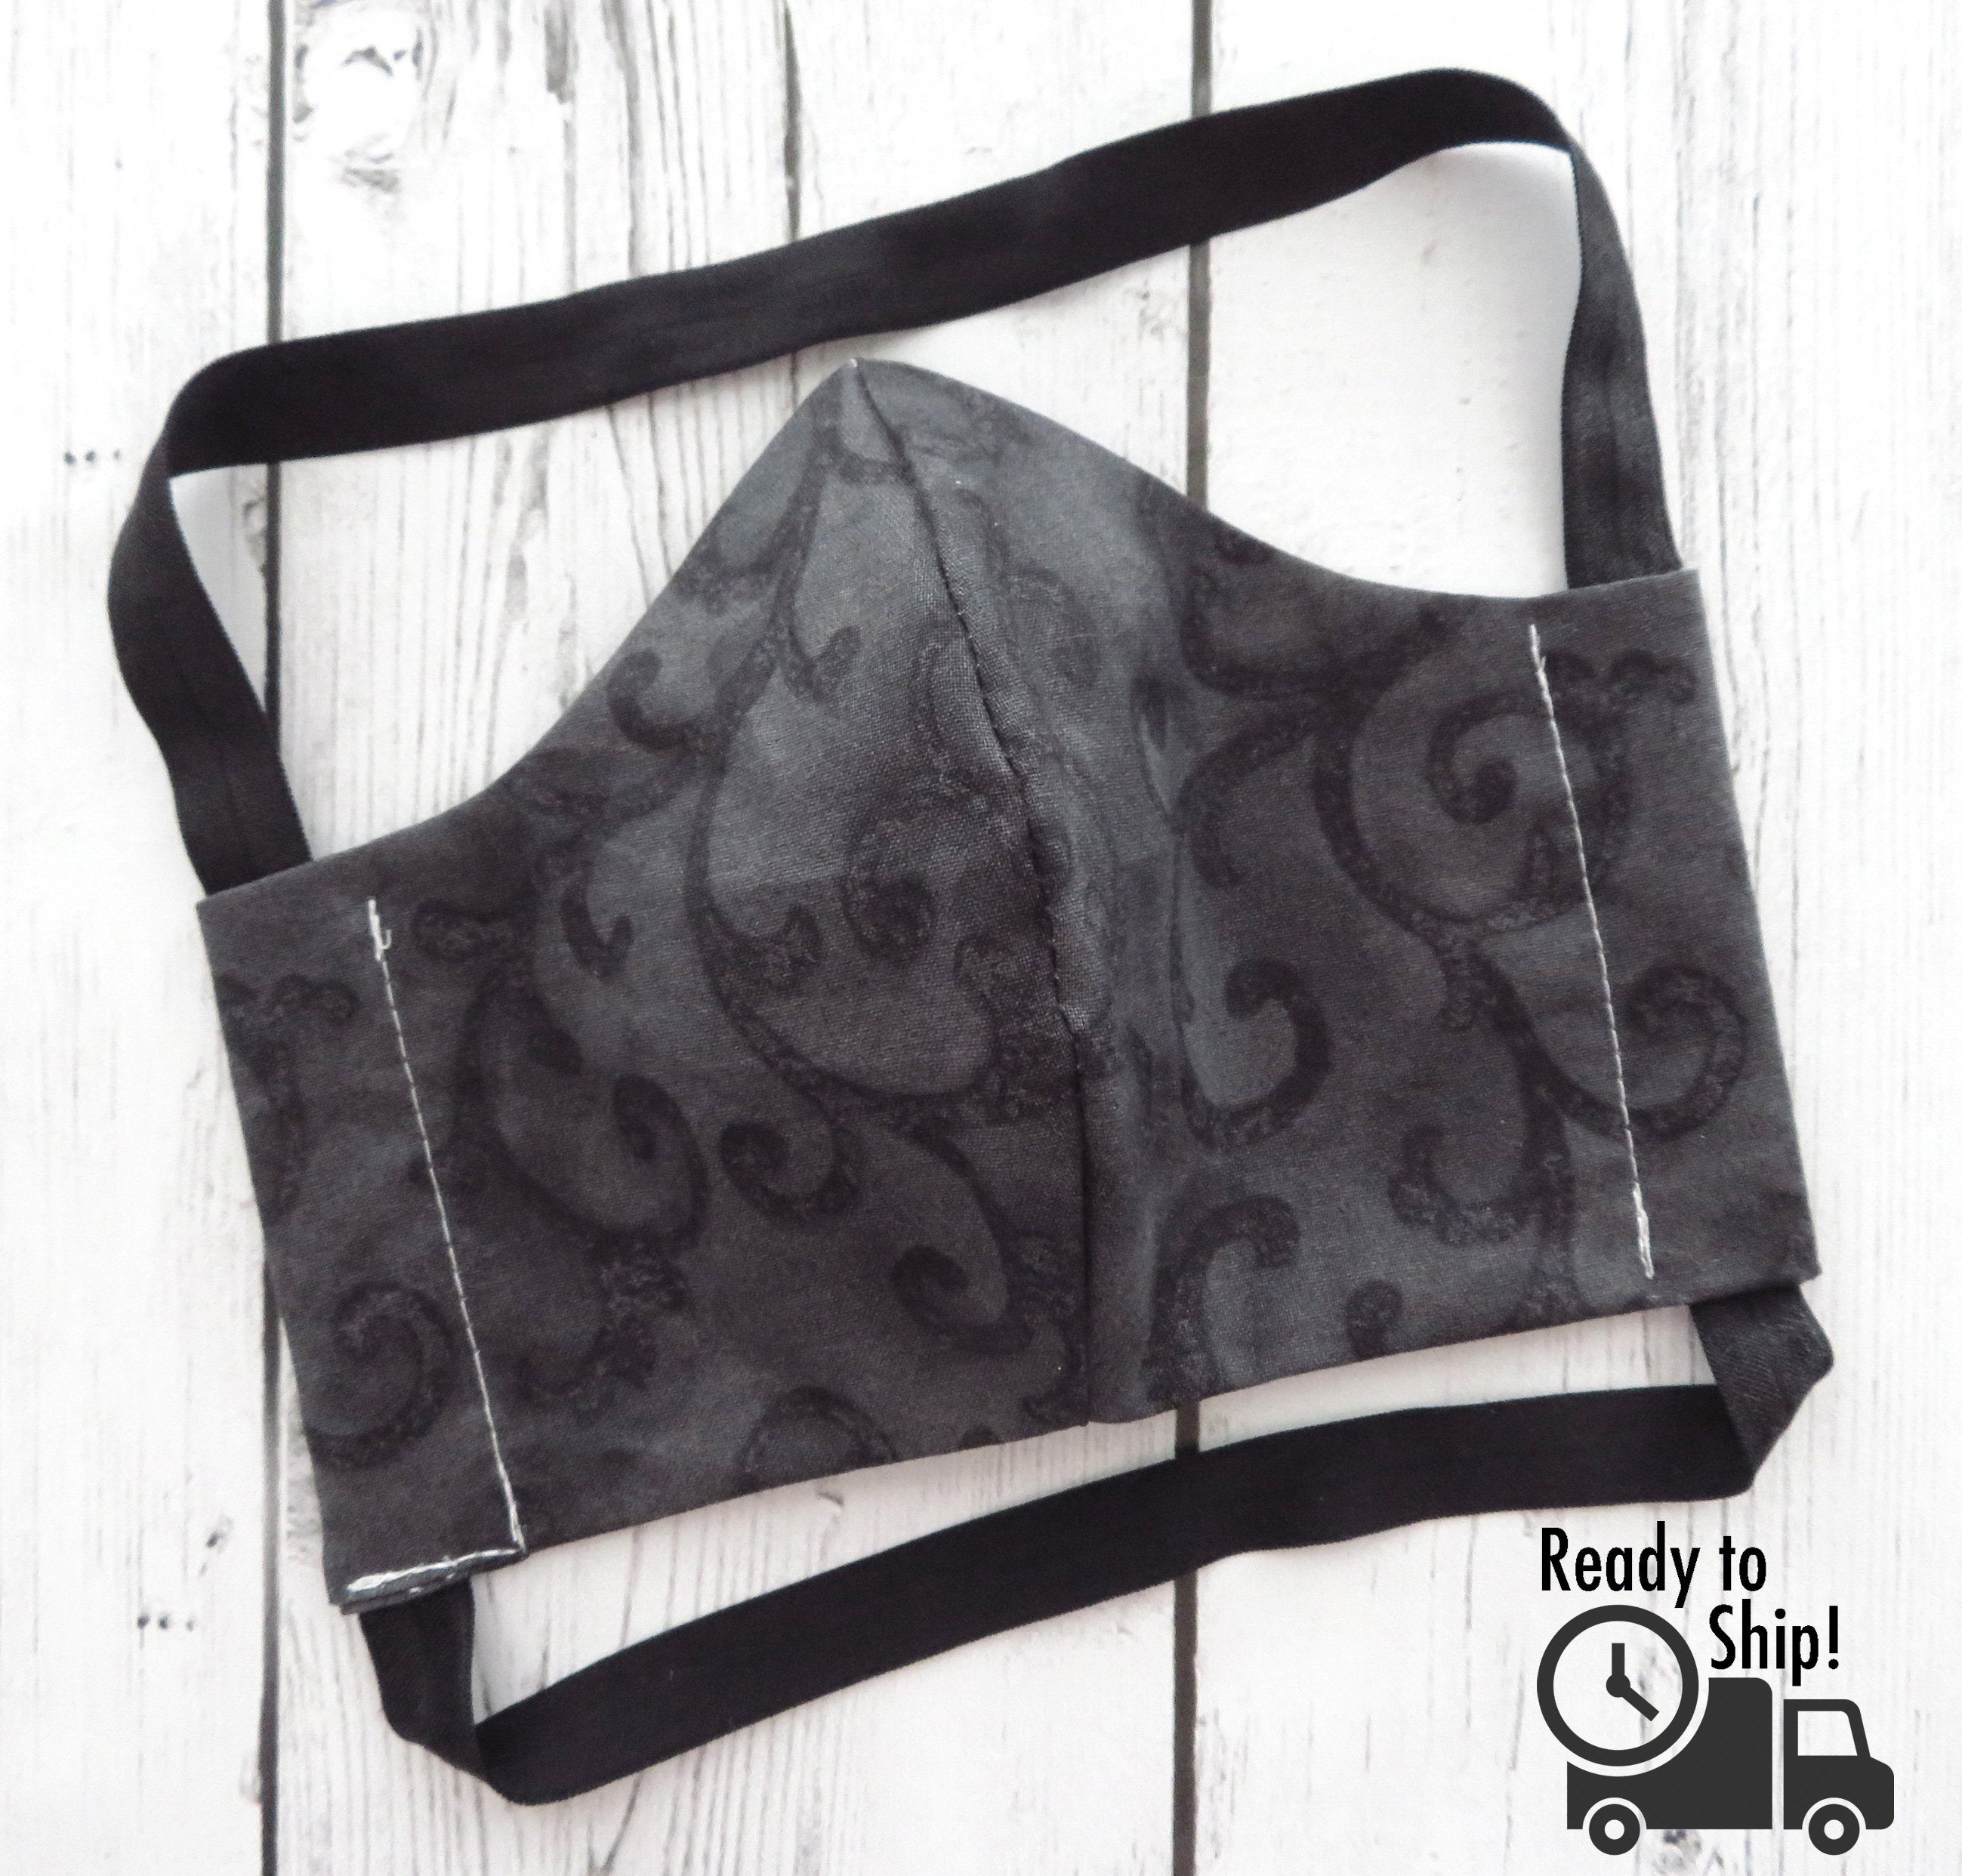 Men's or Women's Face Mask in Black Print  - READY TO SHIP!  handmade in usa, professional looking, re-usable and washable, ear saver design